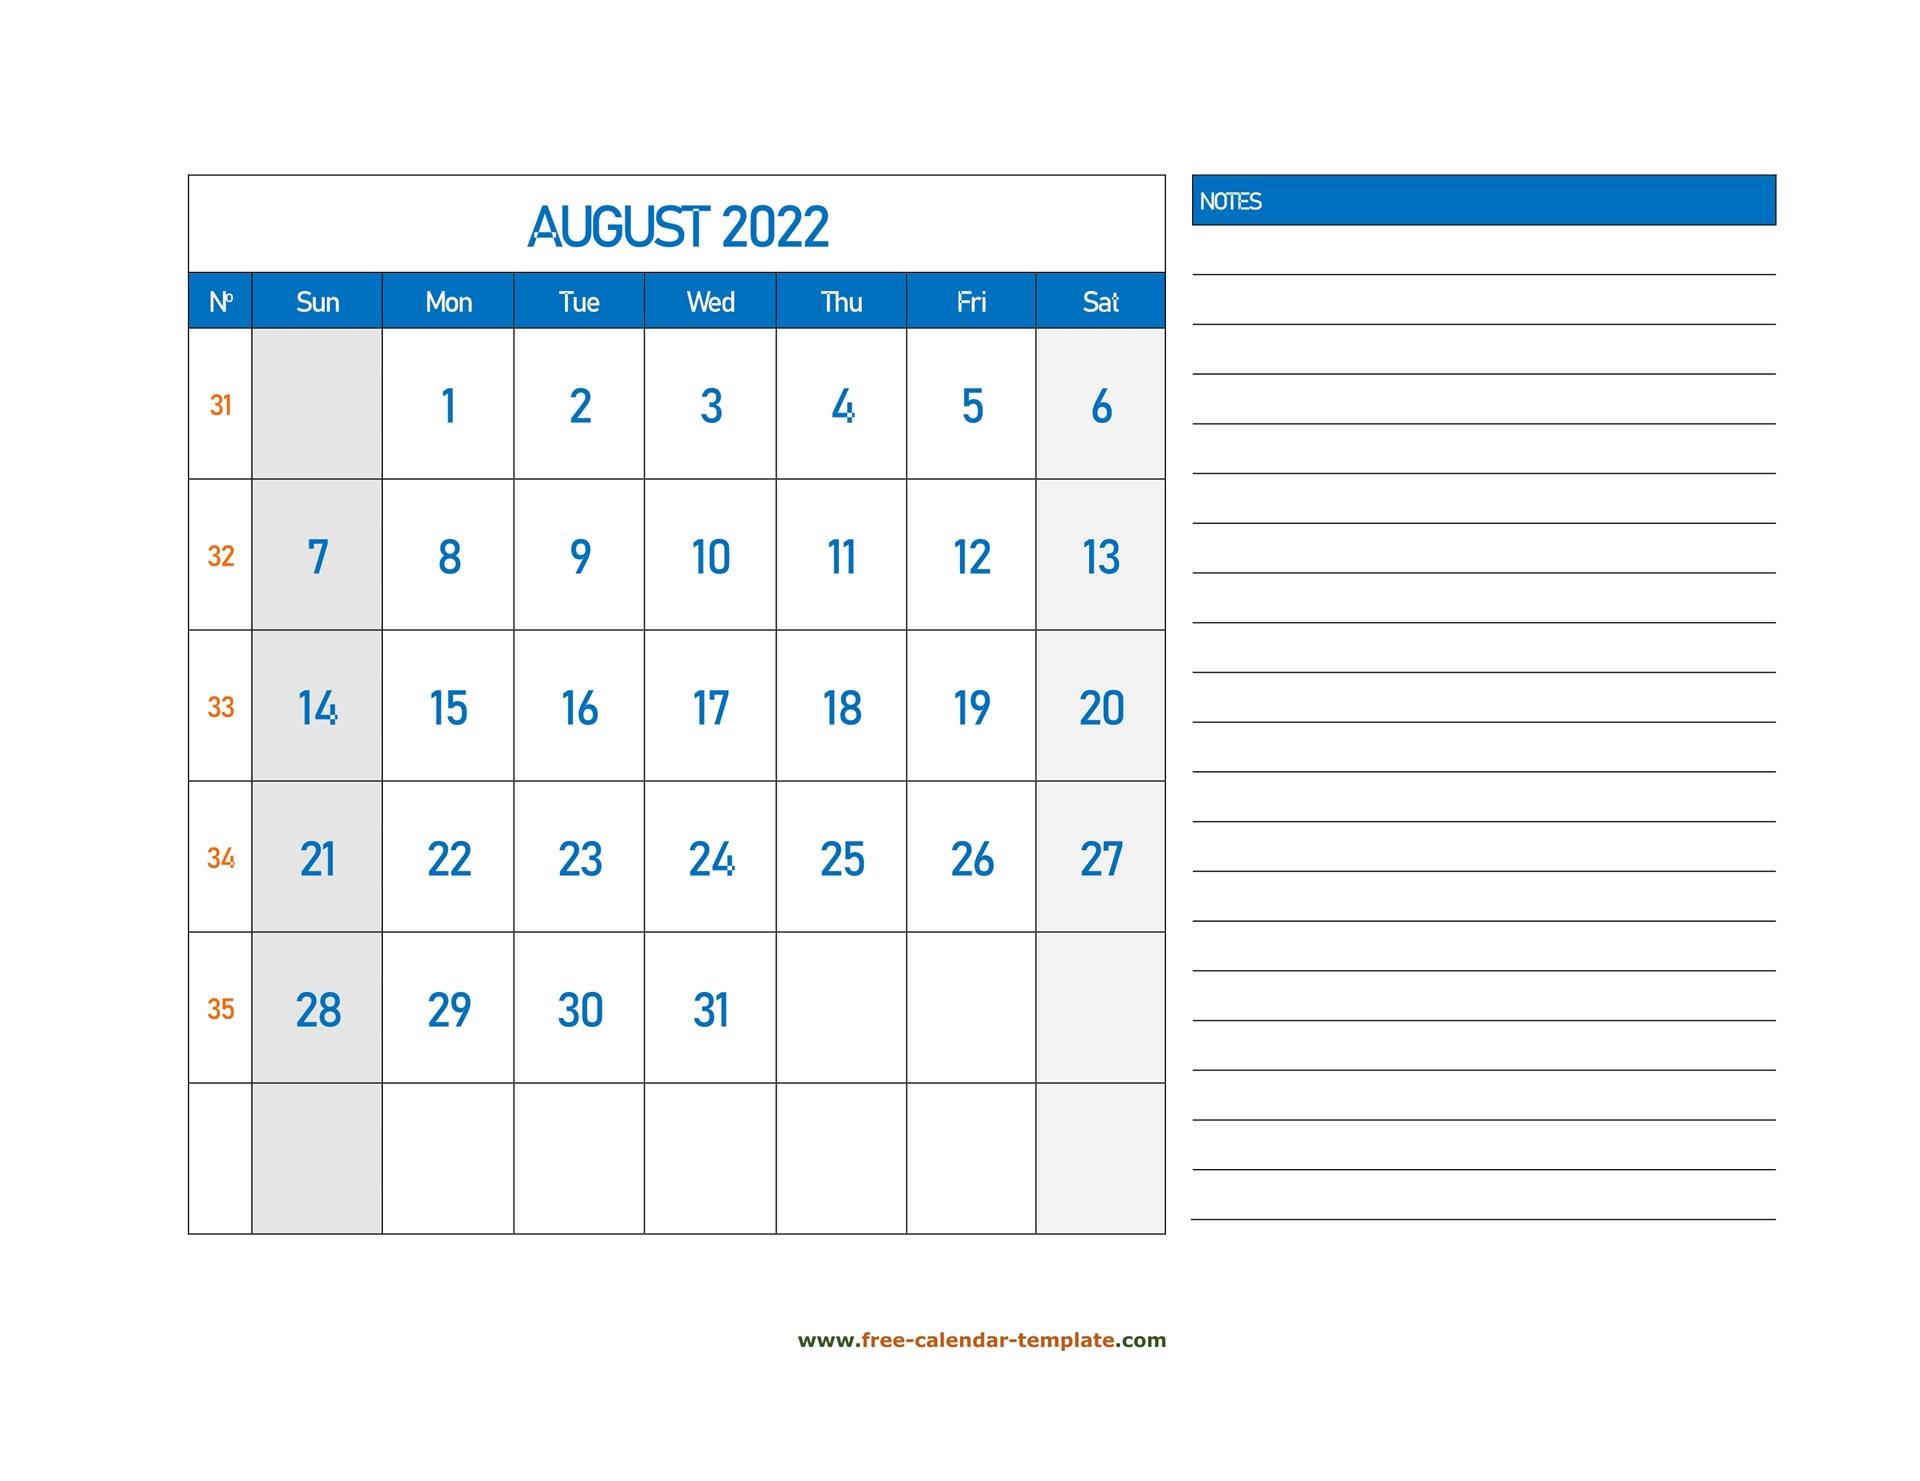 August Calendar 2022 Grid Lines For Holidays And Notes